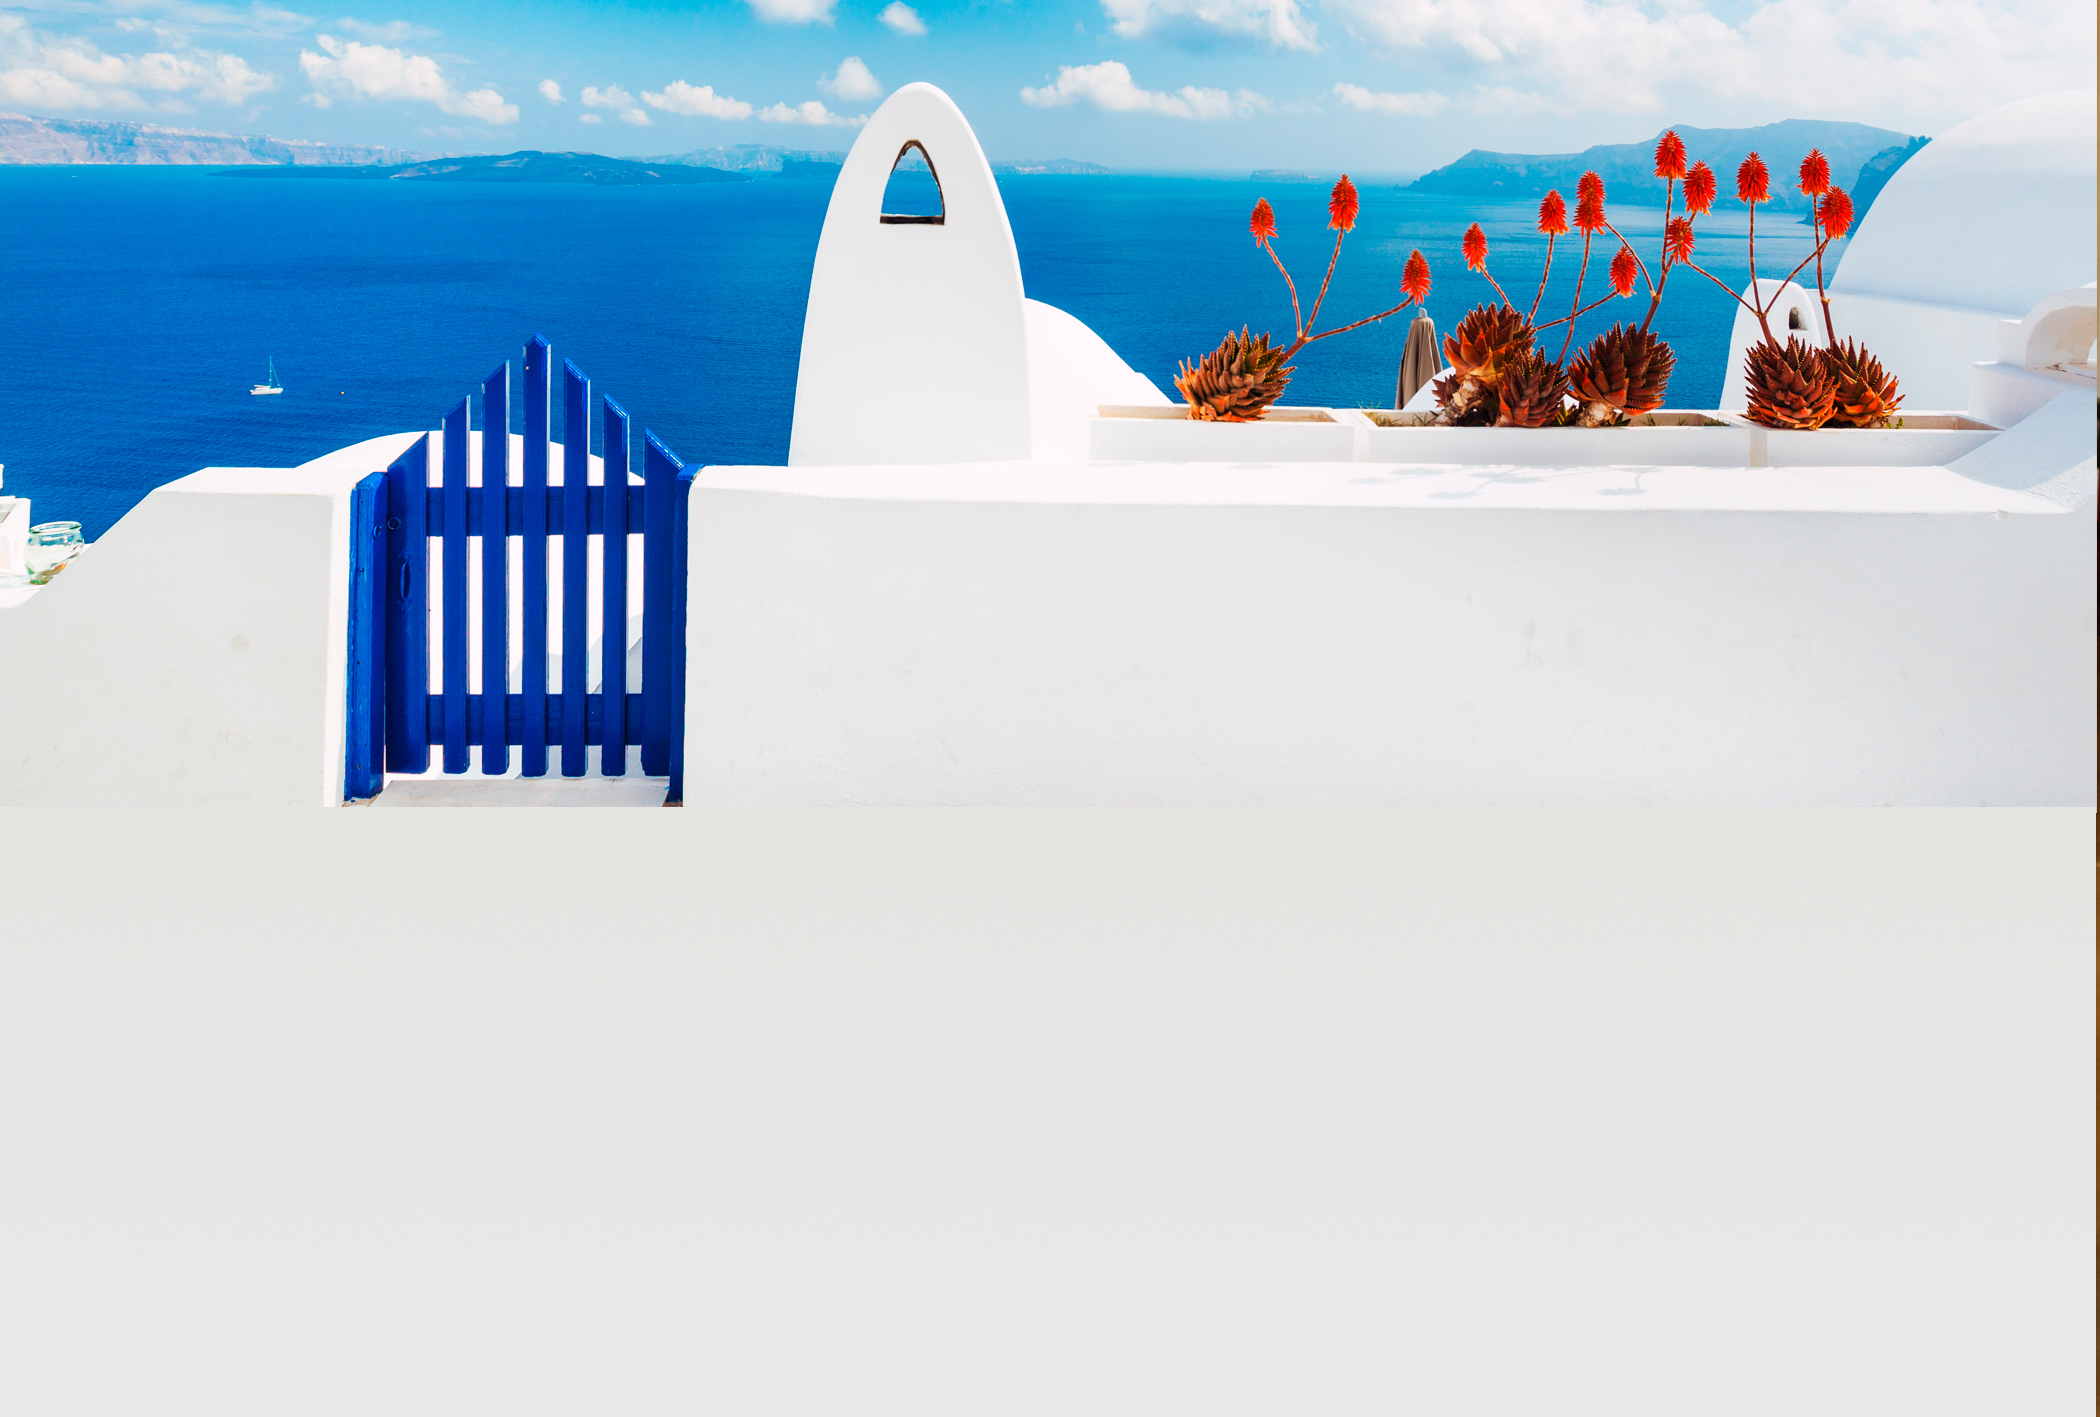 Dreamingreece.com Travel Guide of Greece